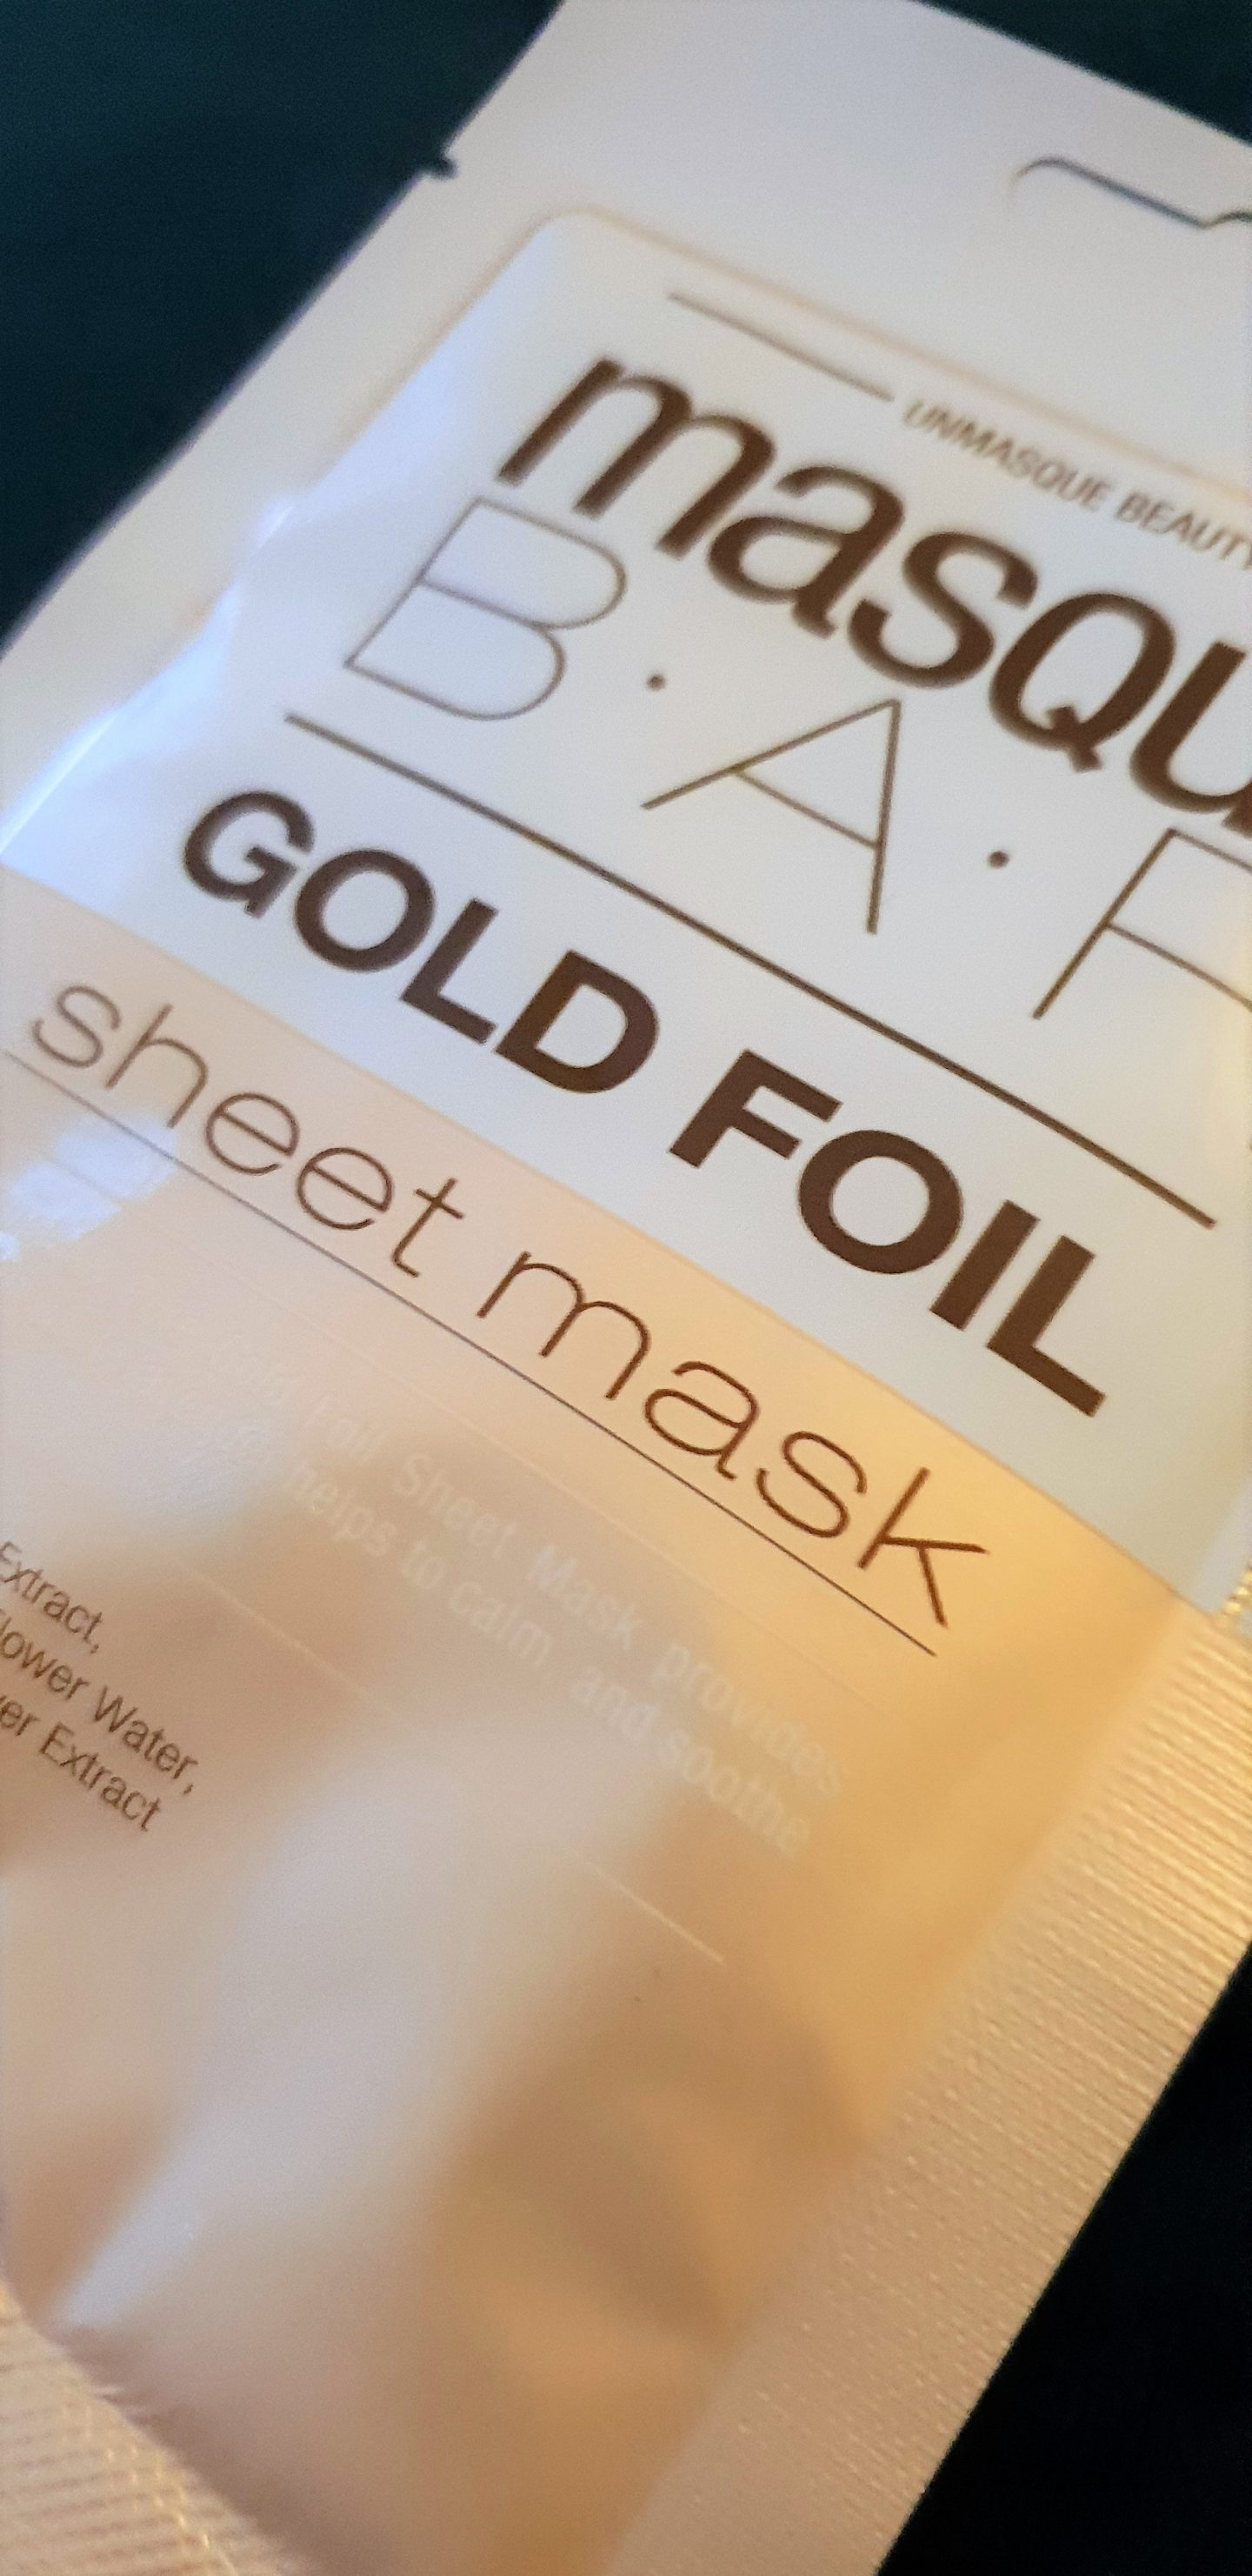 Gold Masque bar foil